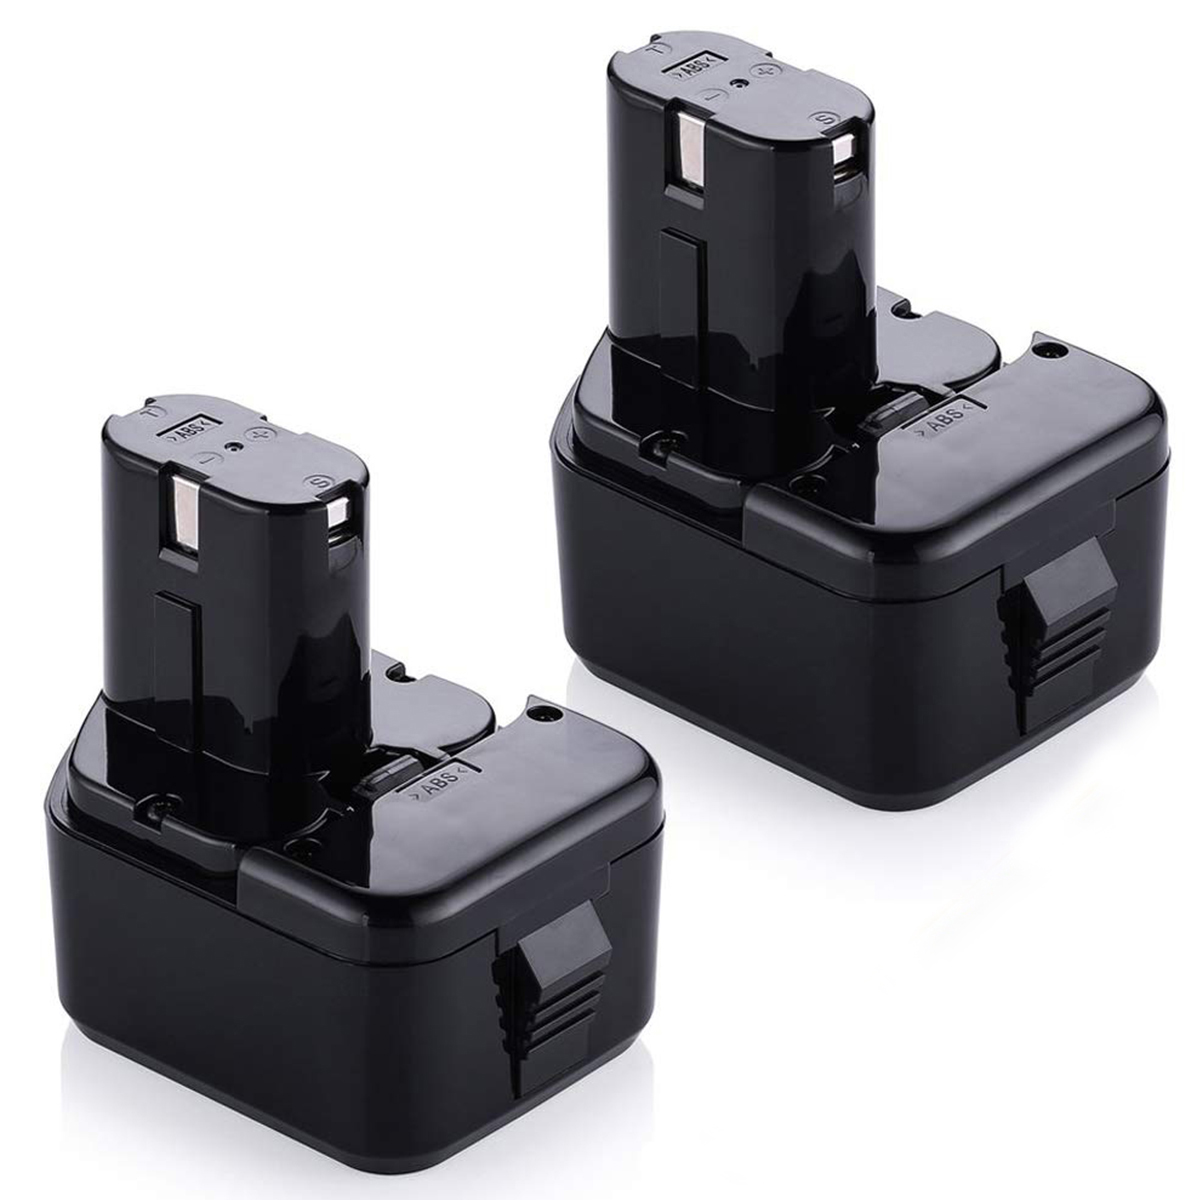 2 Pack 18v Ridgid Drill Battery Replacement For R840087 R840083